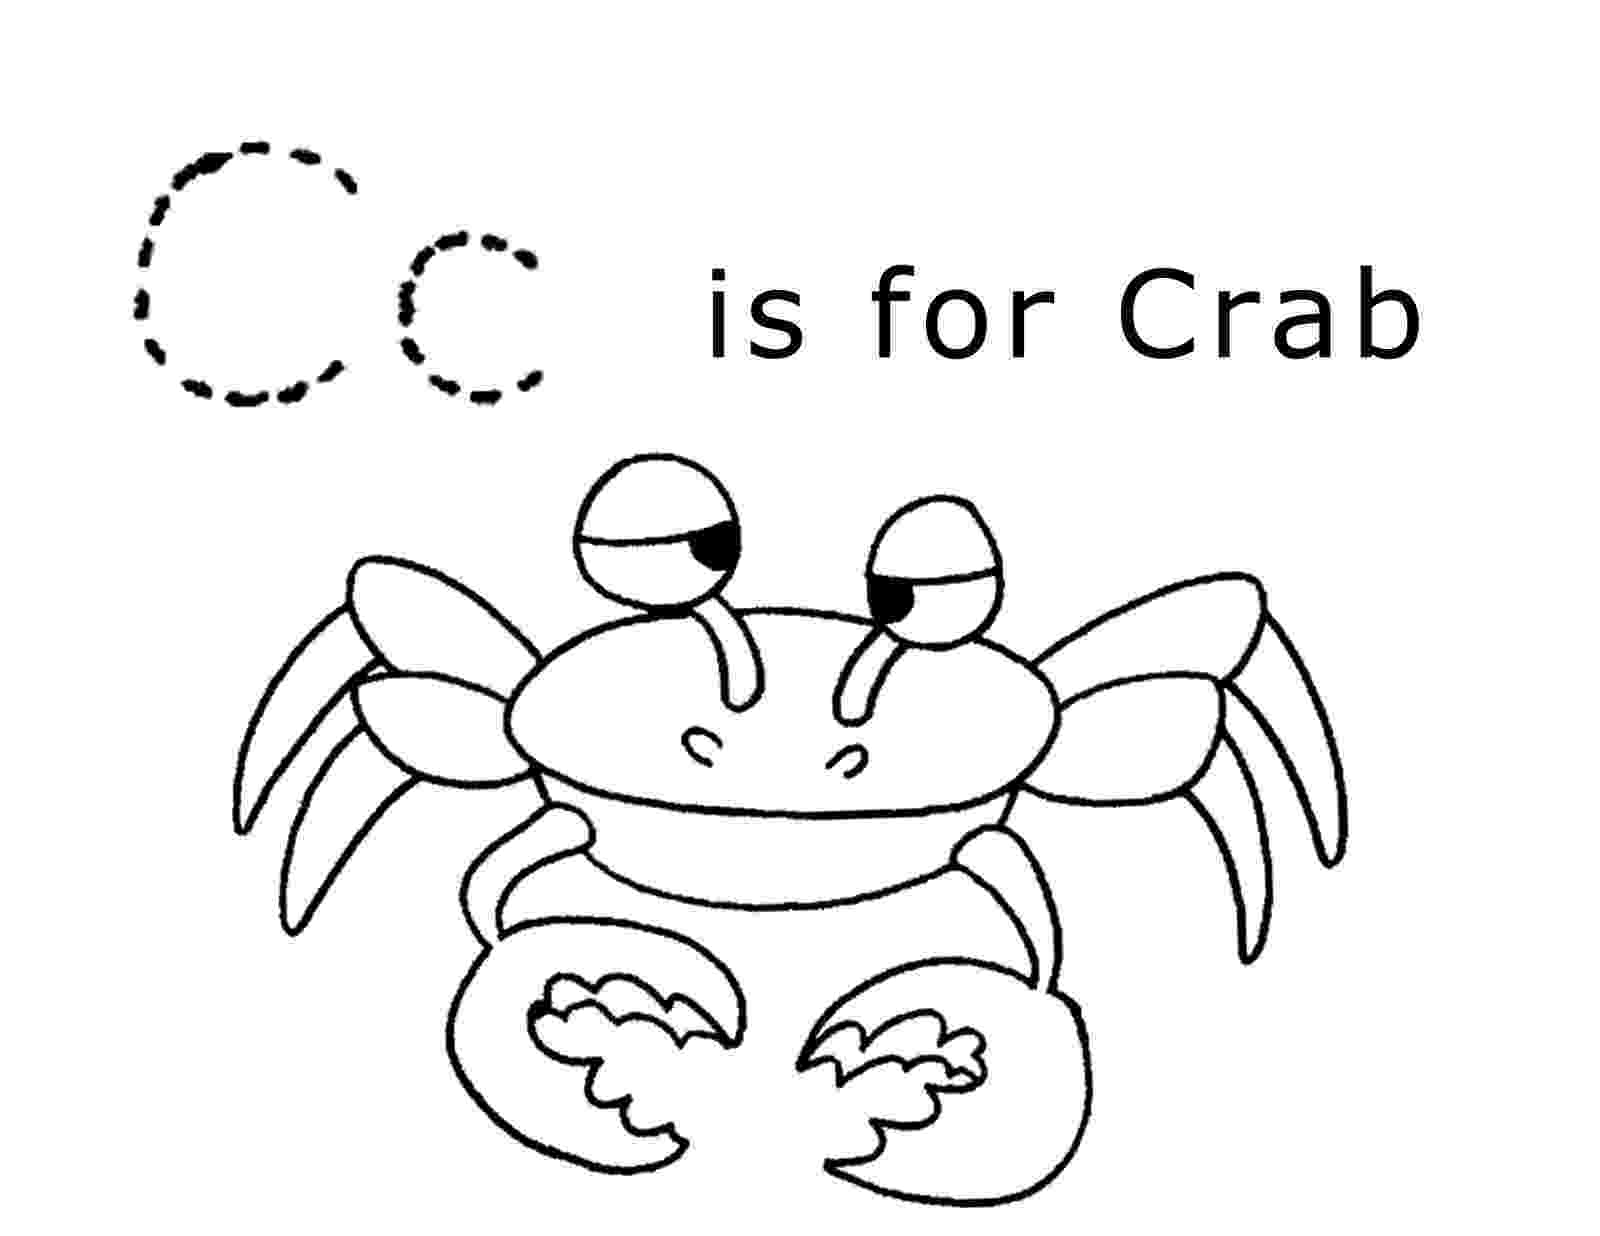 c coloring page letter c coloring pages to download and print for free c coloring page